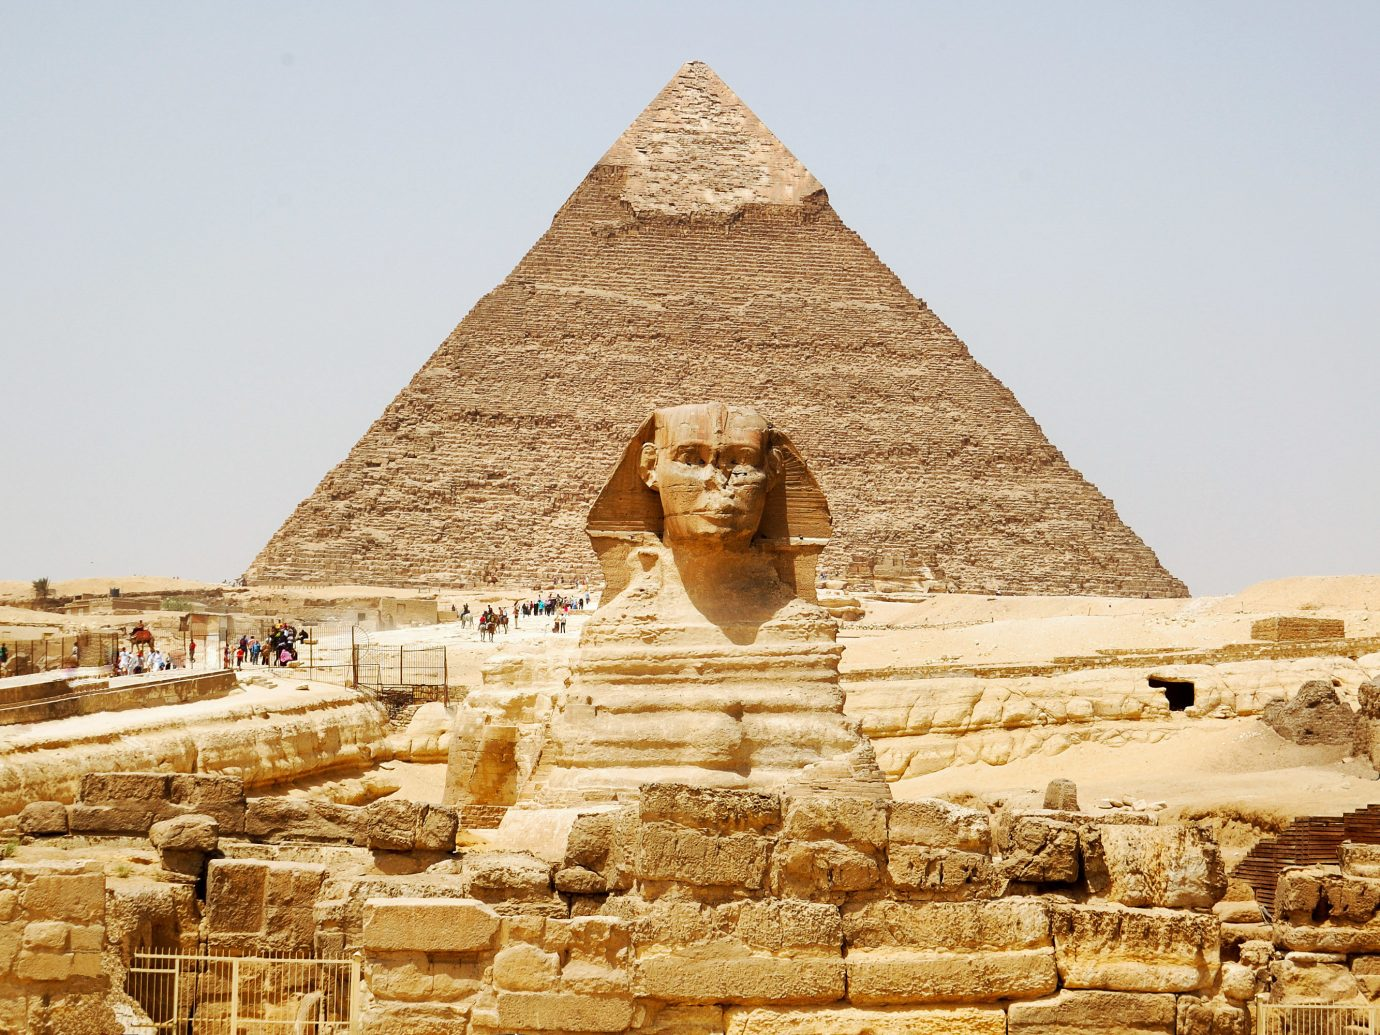 historic site pyramid ancient history monument archaeological site unesco world heritage site history tourist attraction egyptian temple Ruins wonders of the world temple mortuary temple